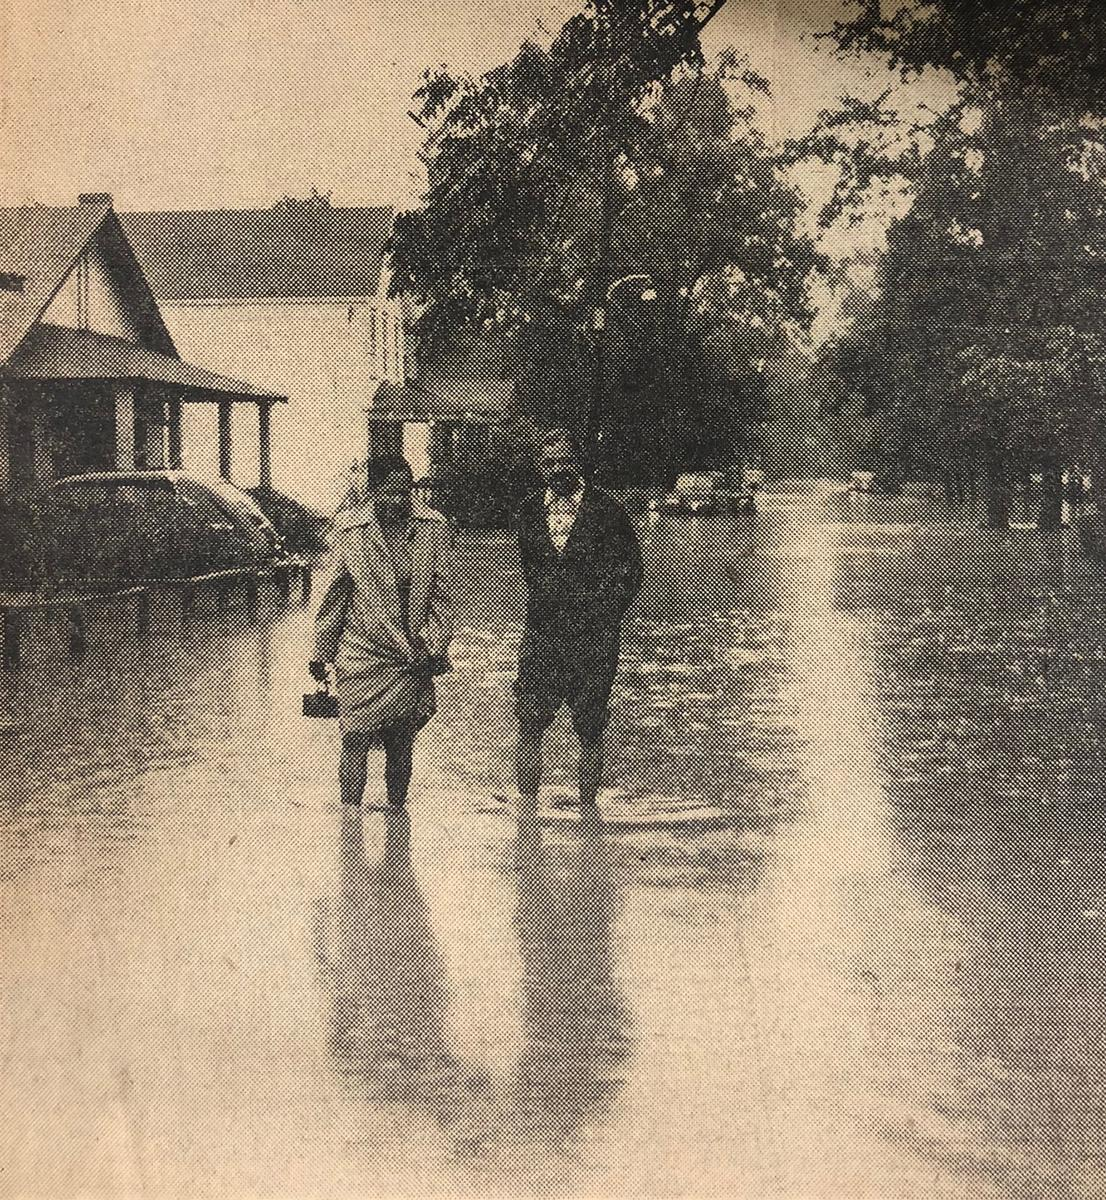 Print magazine image of a couple walking through flooded streets of North Brentwood, Md. in 1955.